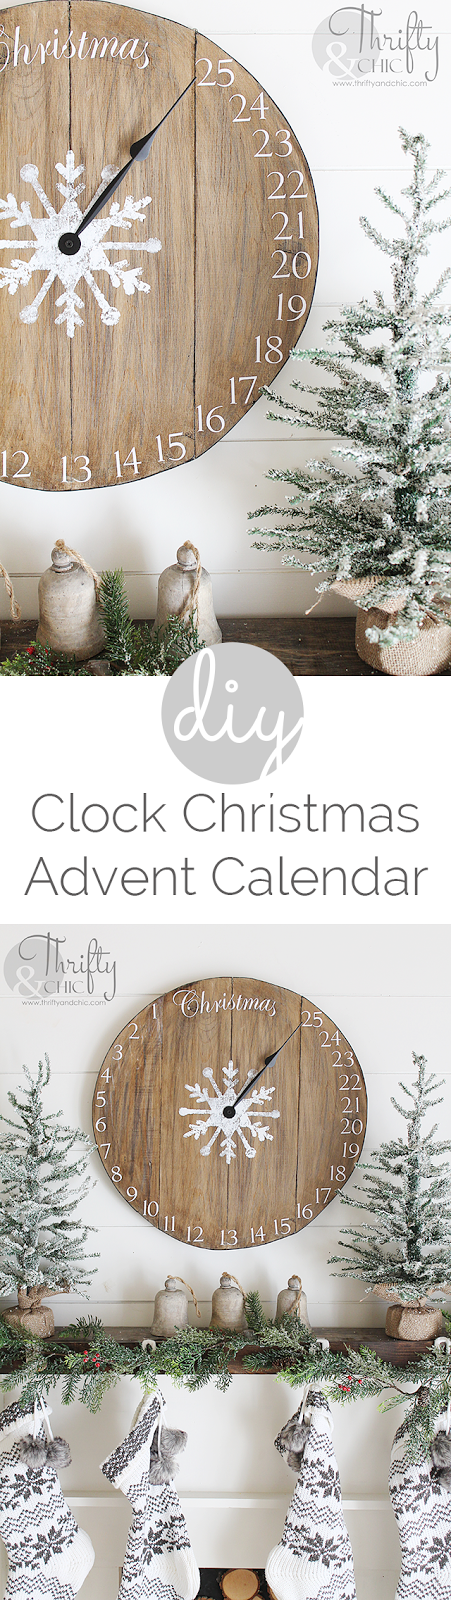 DIY wood clock advent calendar. Great farmhouse style christmas decor or decorating ideas